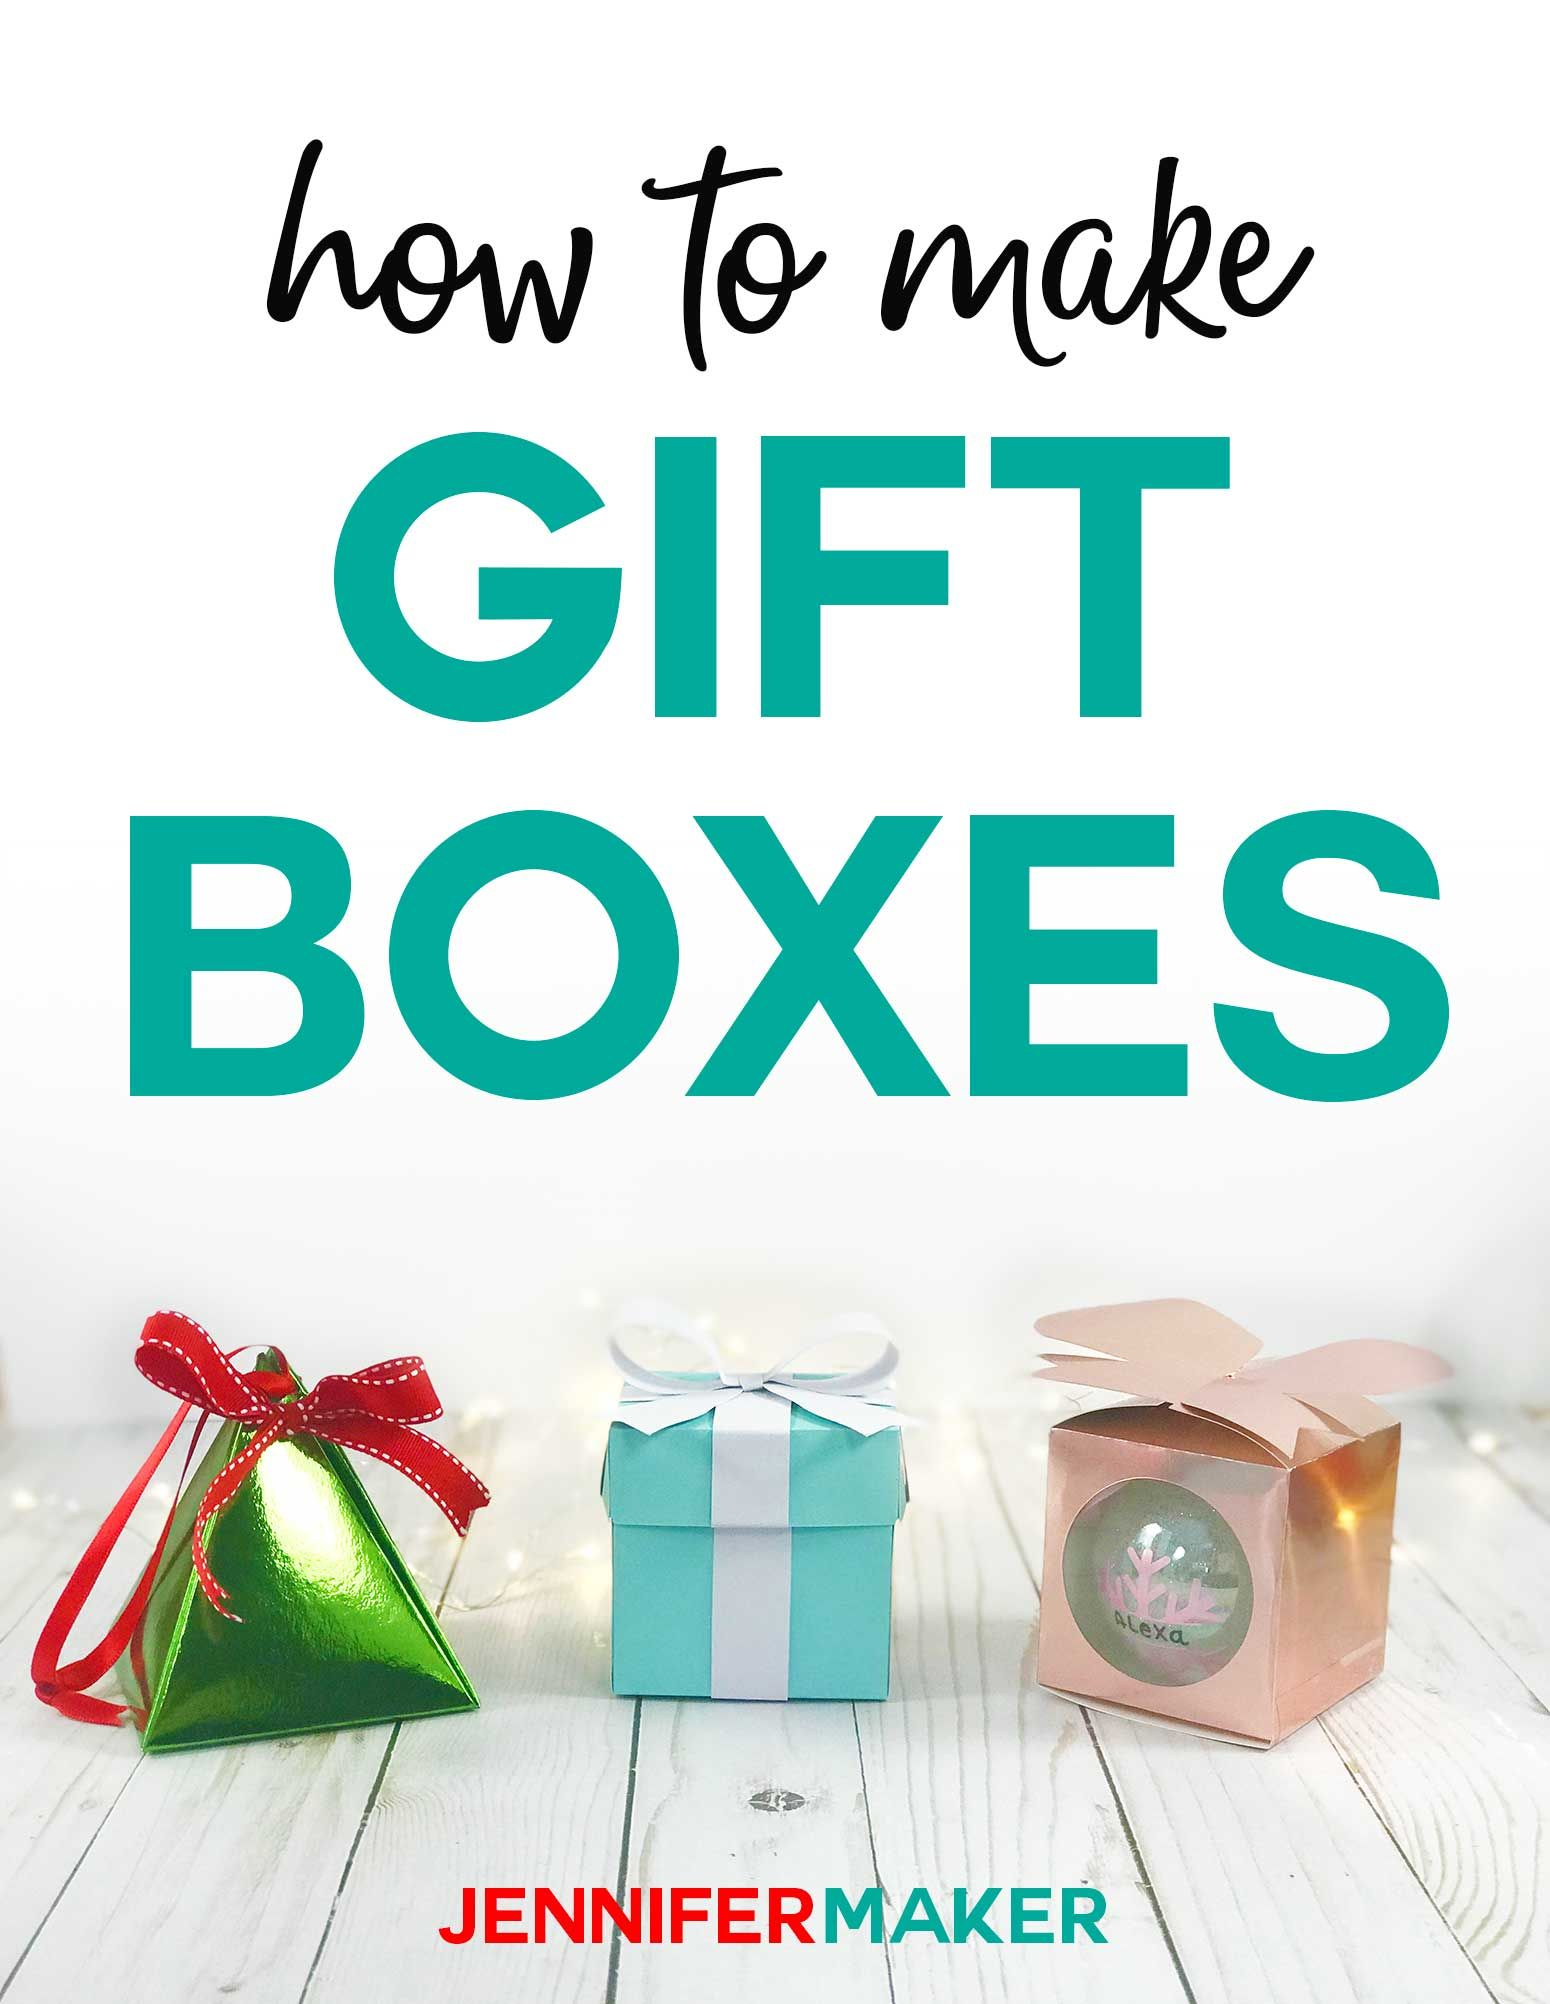 Gift Box Templates Perfect For Handmade Small Gifts Cricut